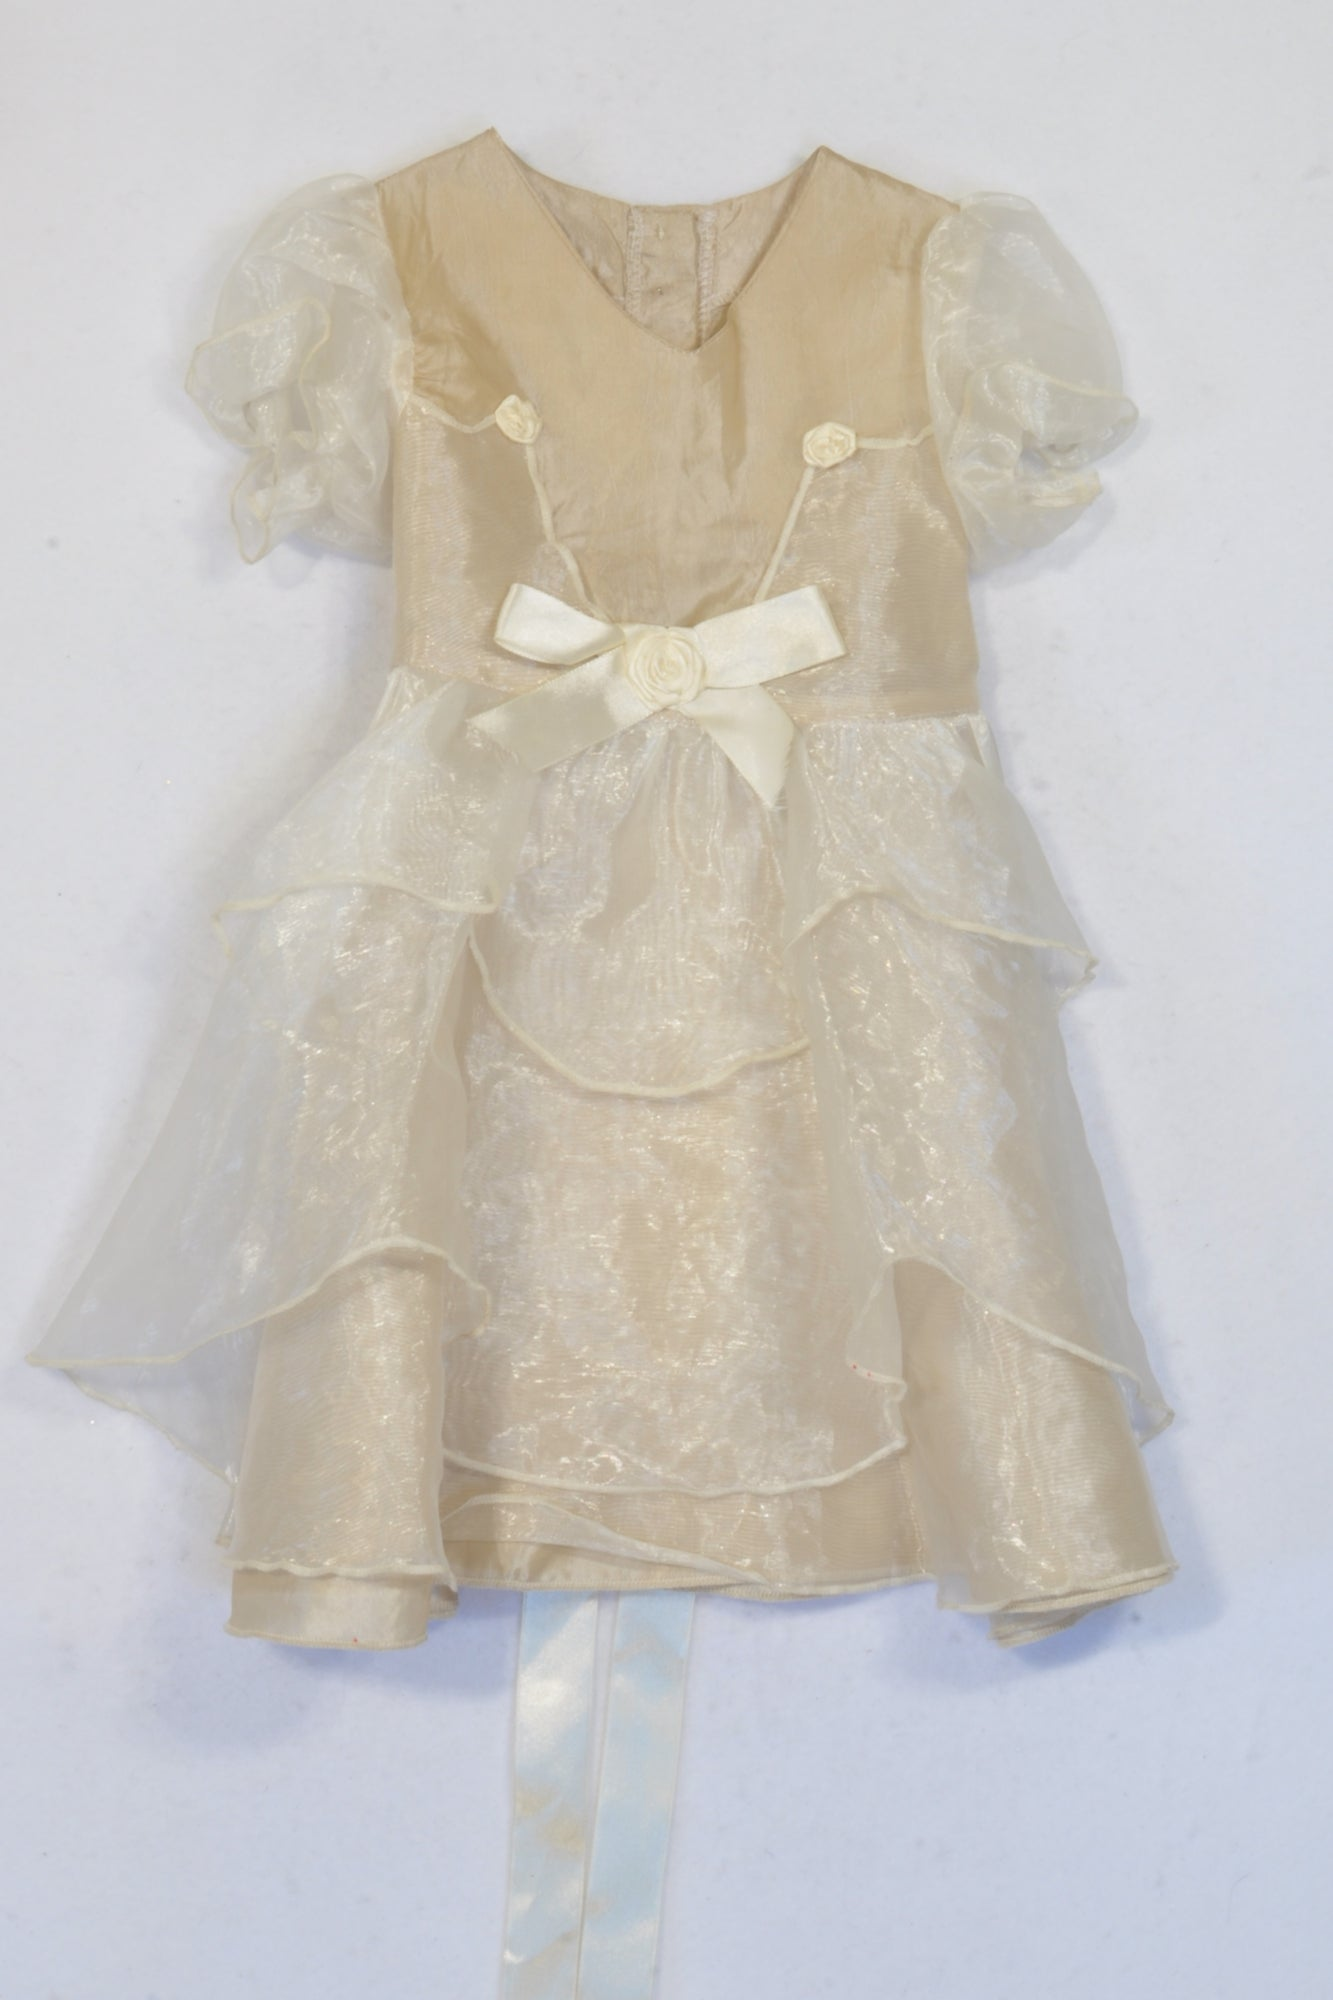 Luvly Miss Gold Organza Layered Dress Girls 6-12 months